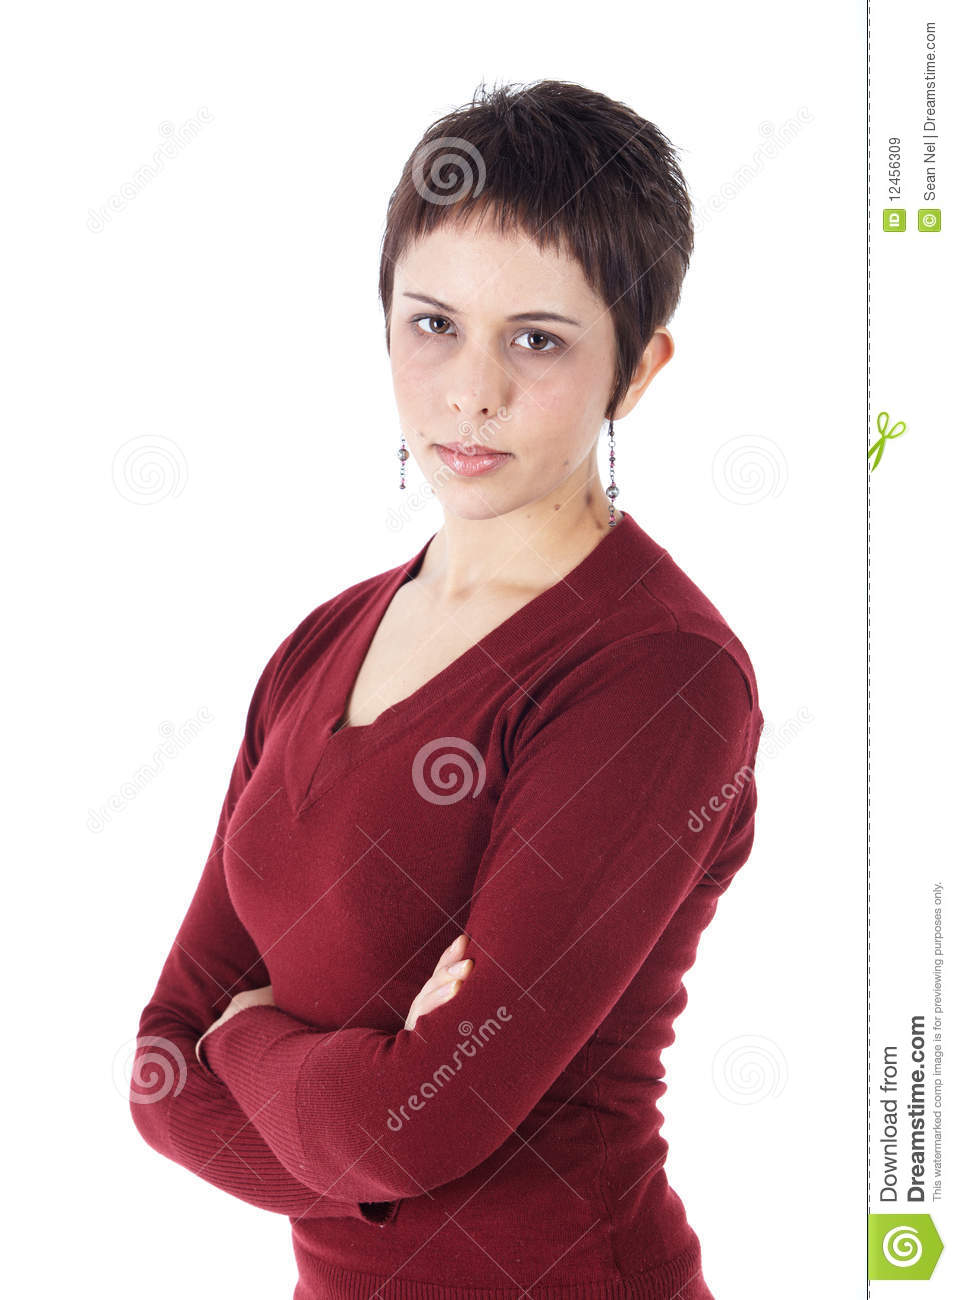 Royalty Free Adult Images 104